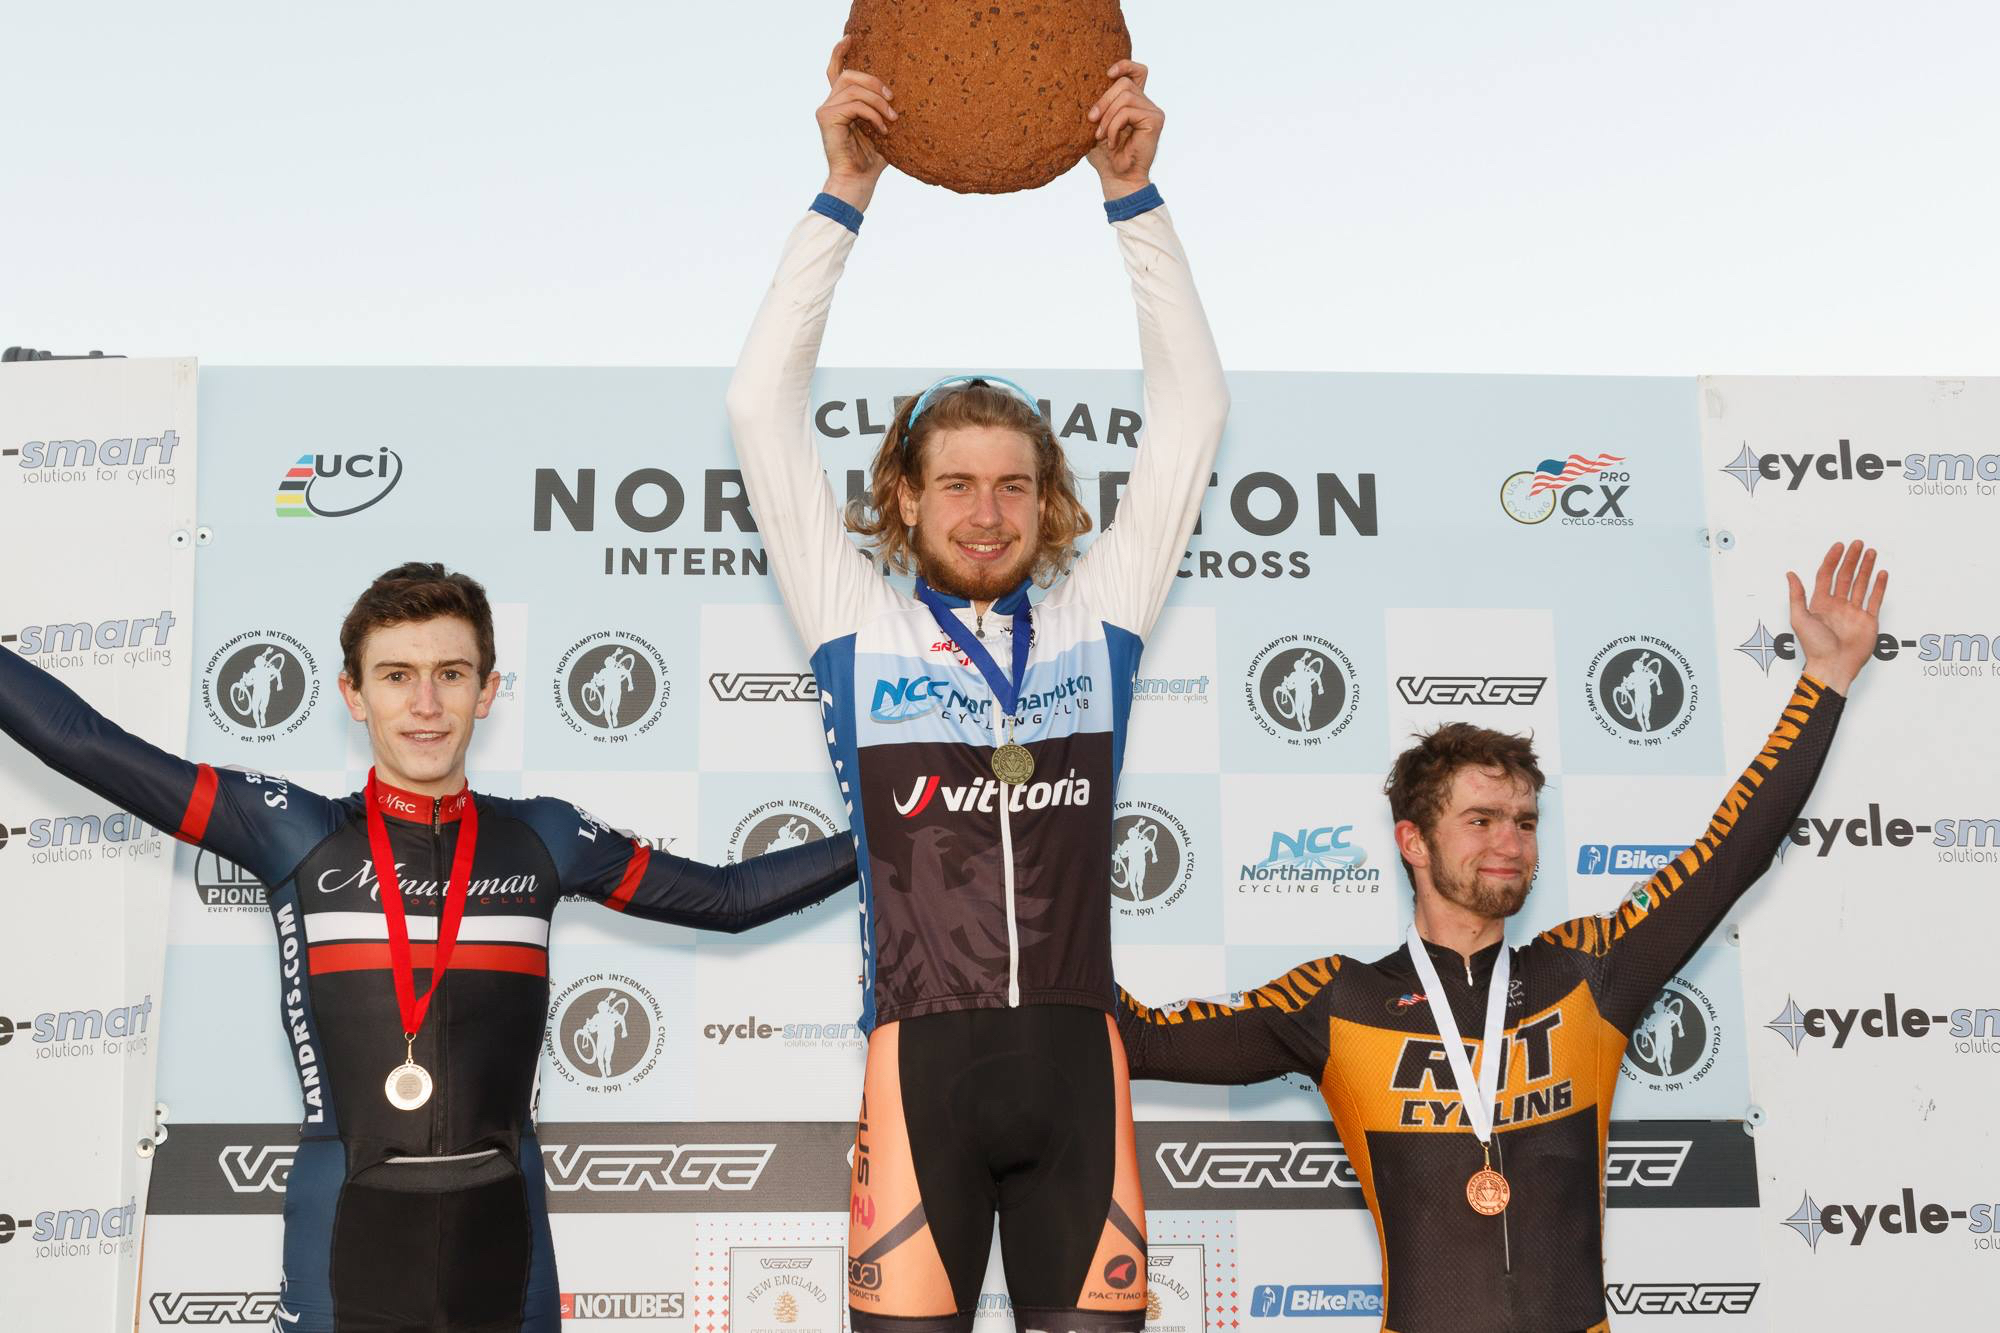 During a banner year, Smith wins the U23 at Verge Northampton International Cyclocross on Nov. 8, 2015. Photo courtesy of Cycle-Smart.